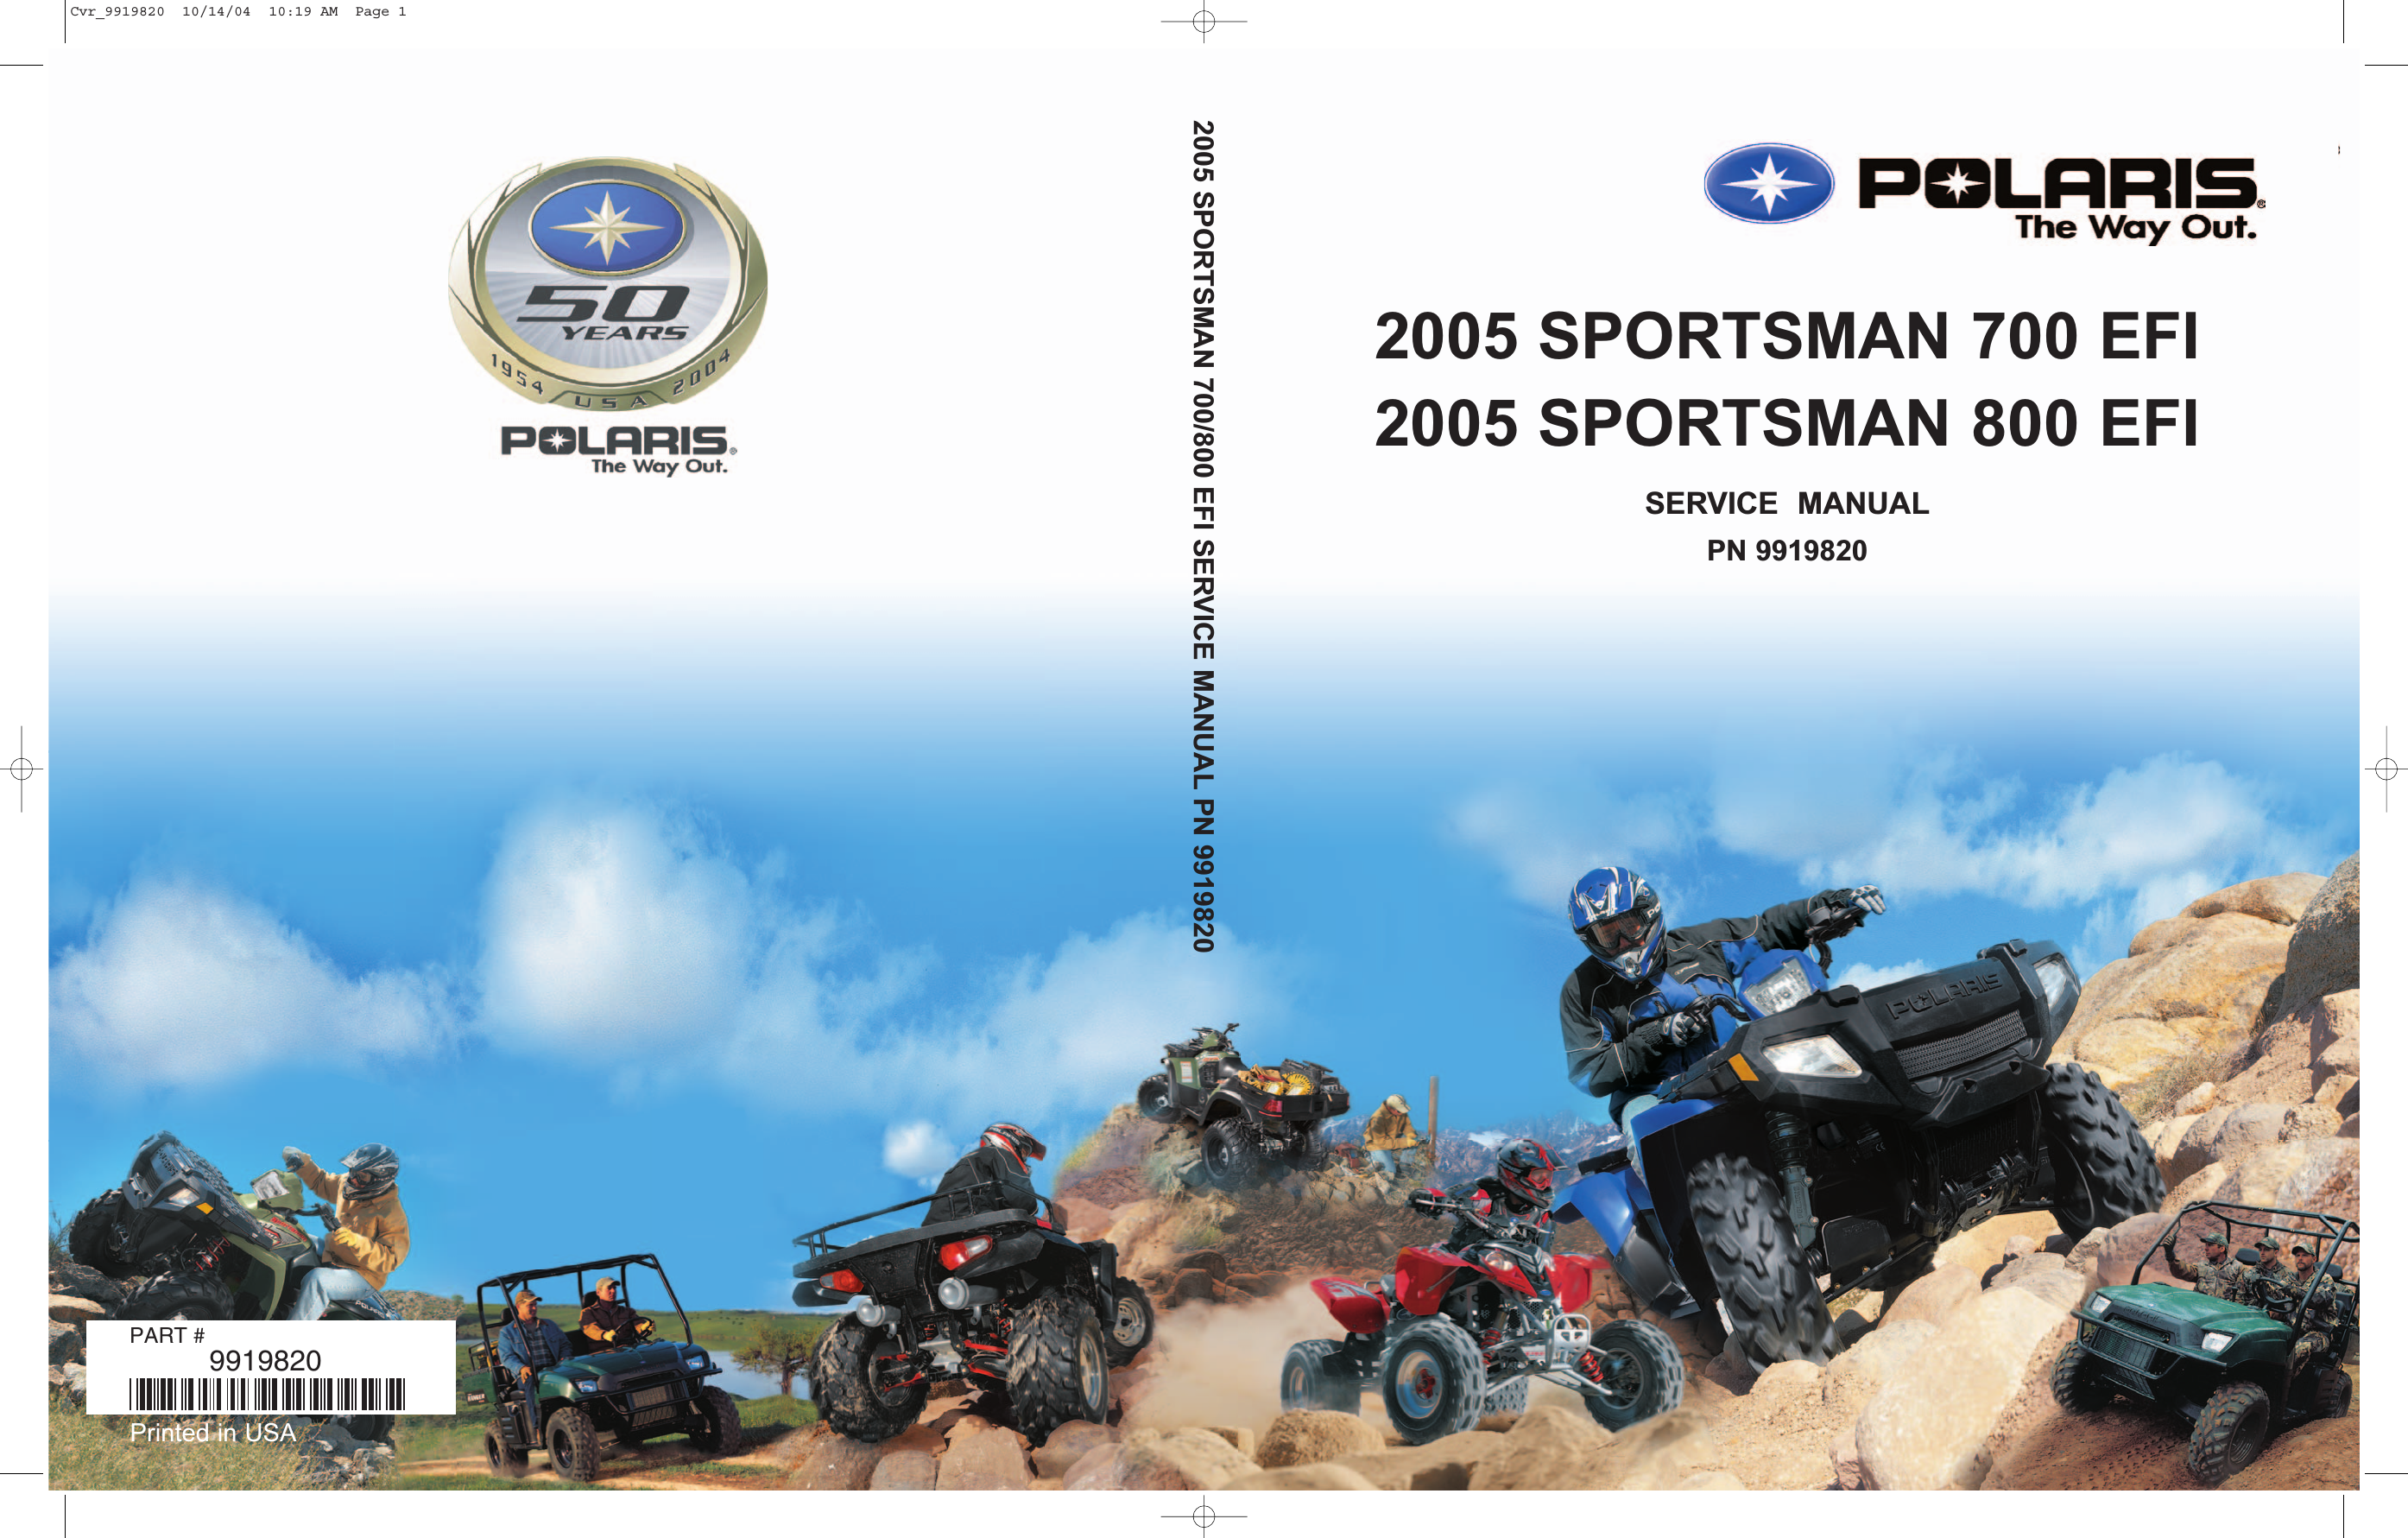 Air Flow Wiring Diagram Polaris Sportsman 700 Twin Electrical 2005 Efi 800 Service Manual